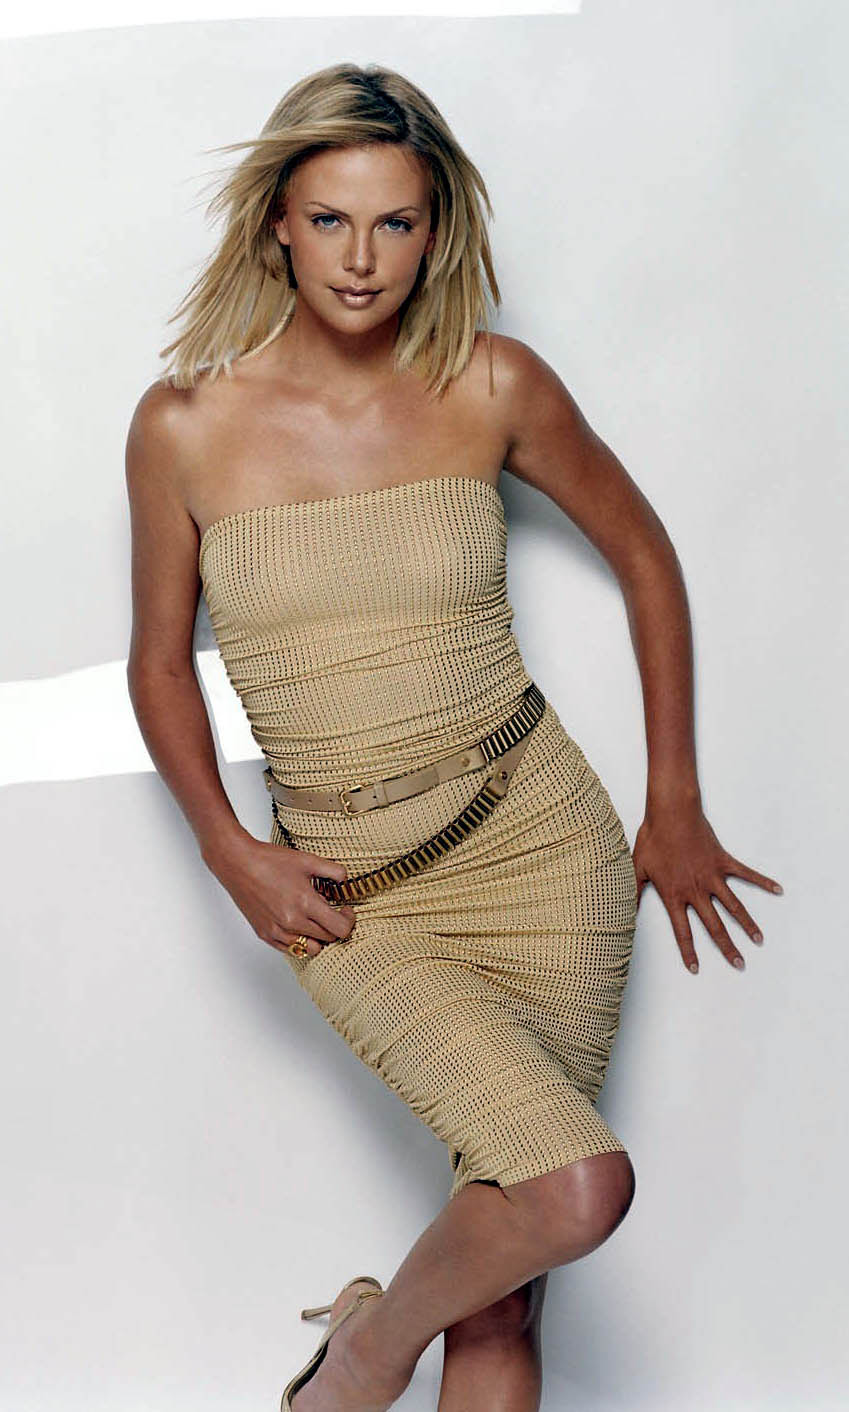 Charlize Theron Vogue magazine cowgirl wallpaper